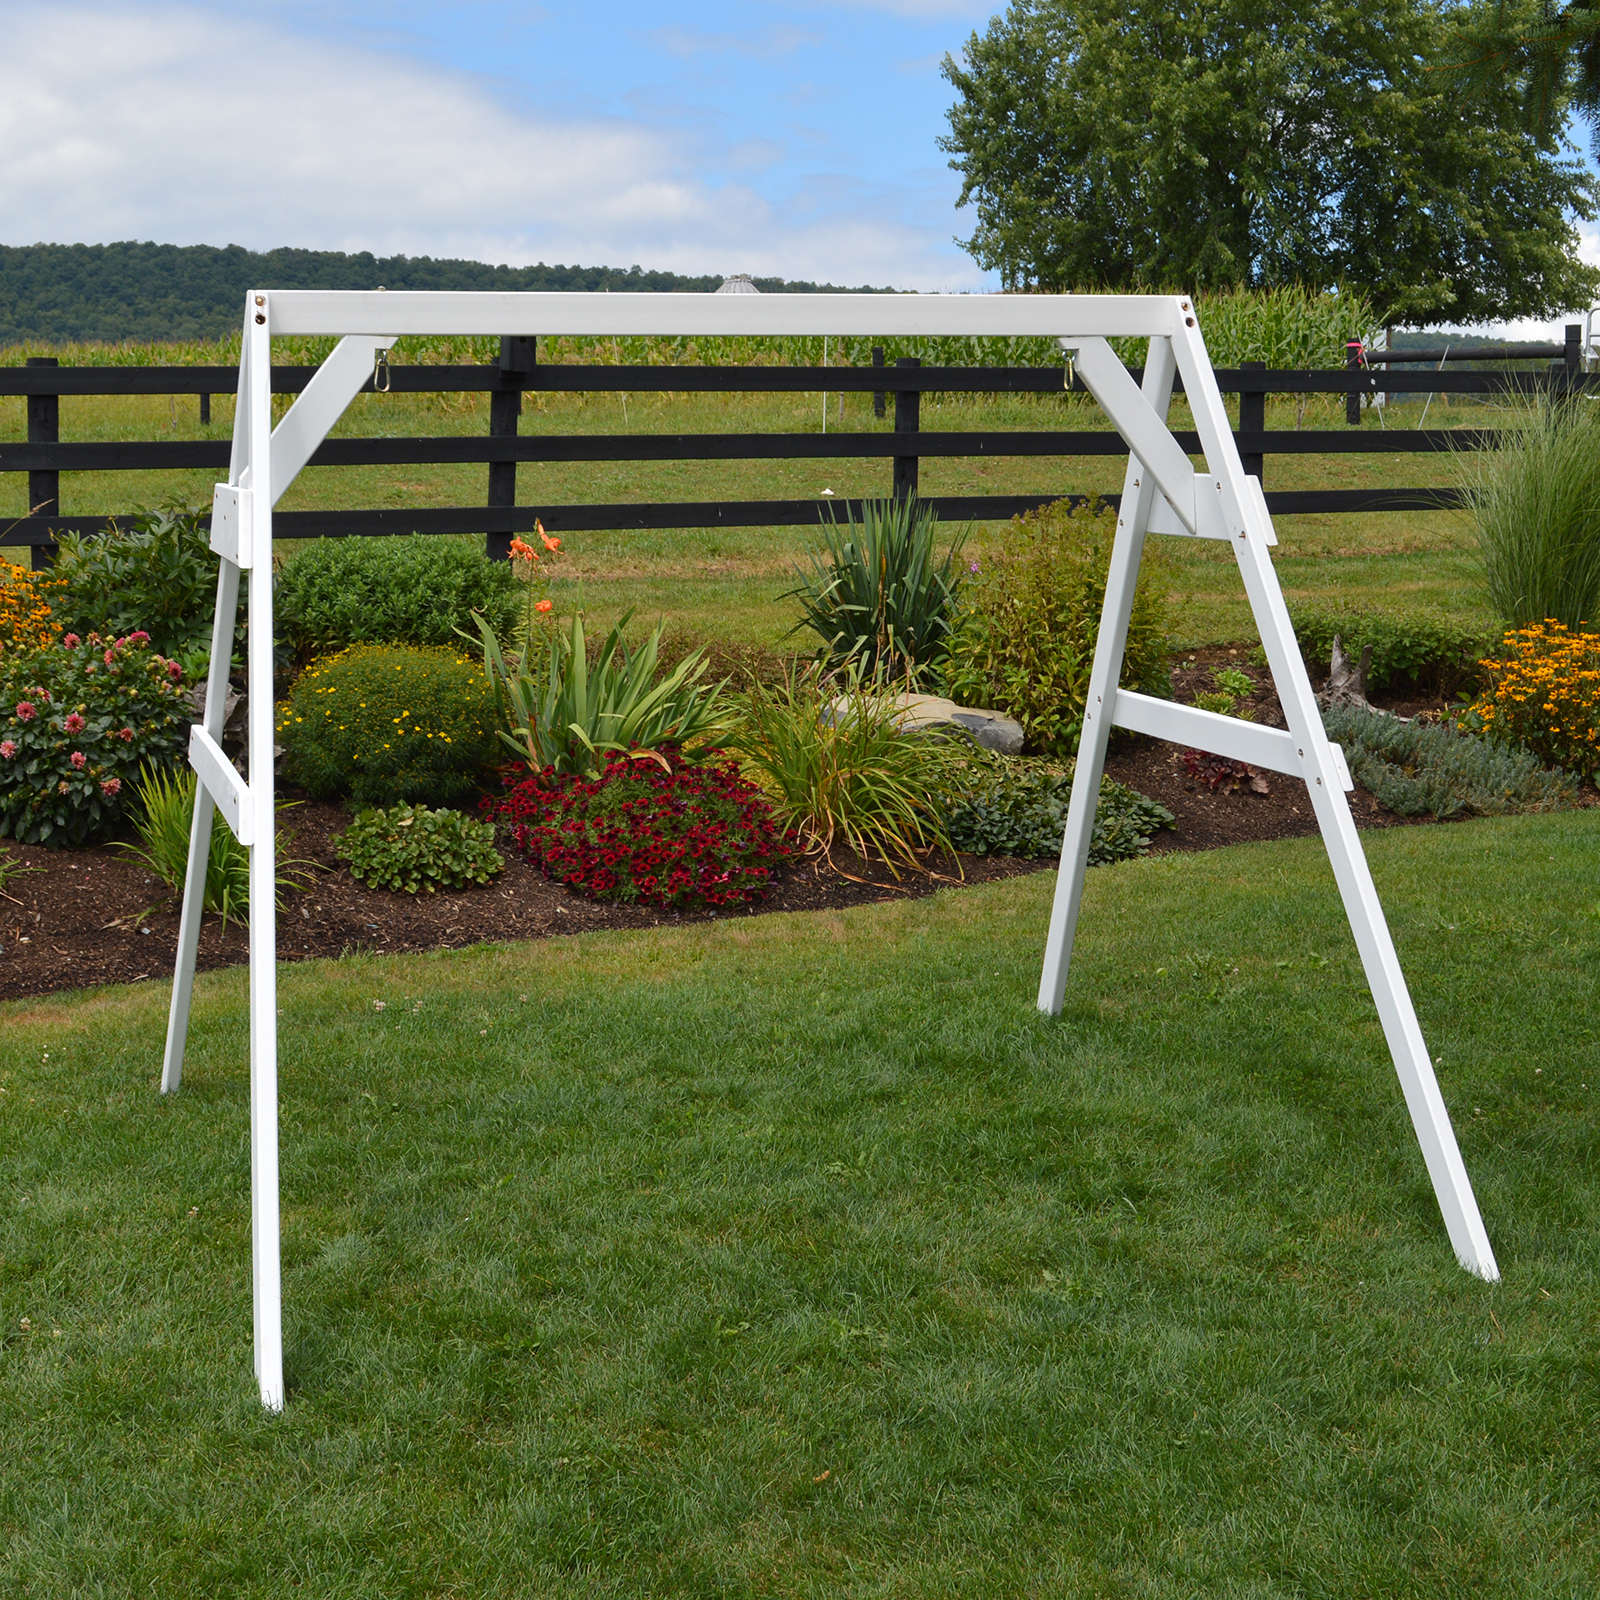 A Amp L Furniture 5 Ft A Frame Swing Stand For 2 Chair